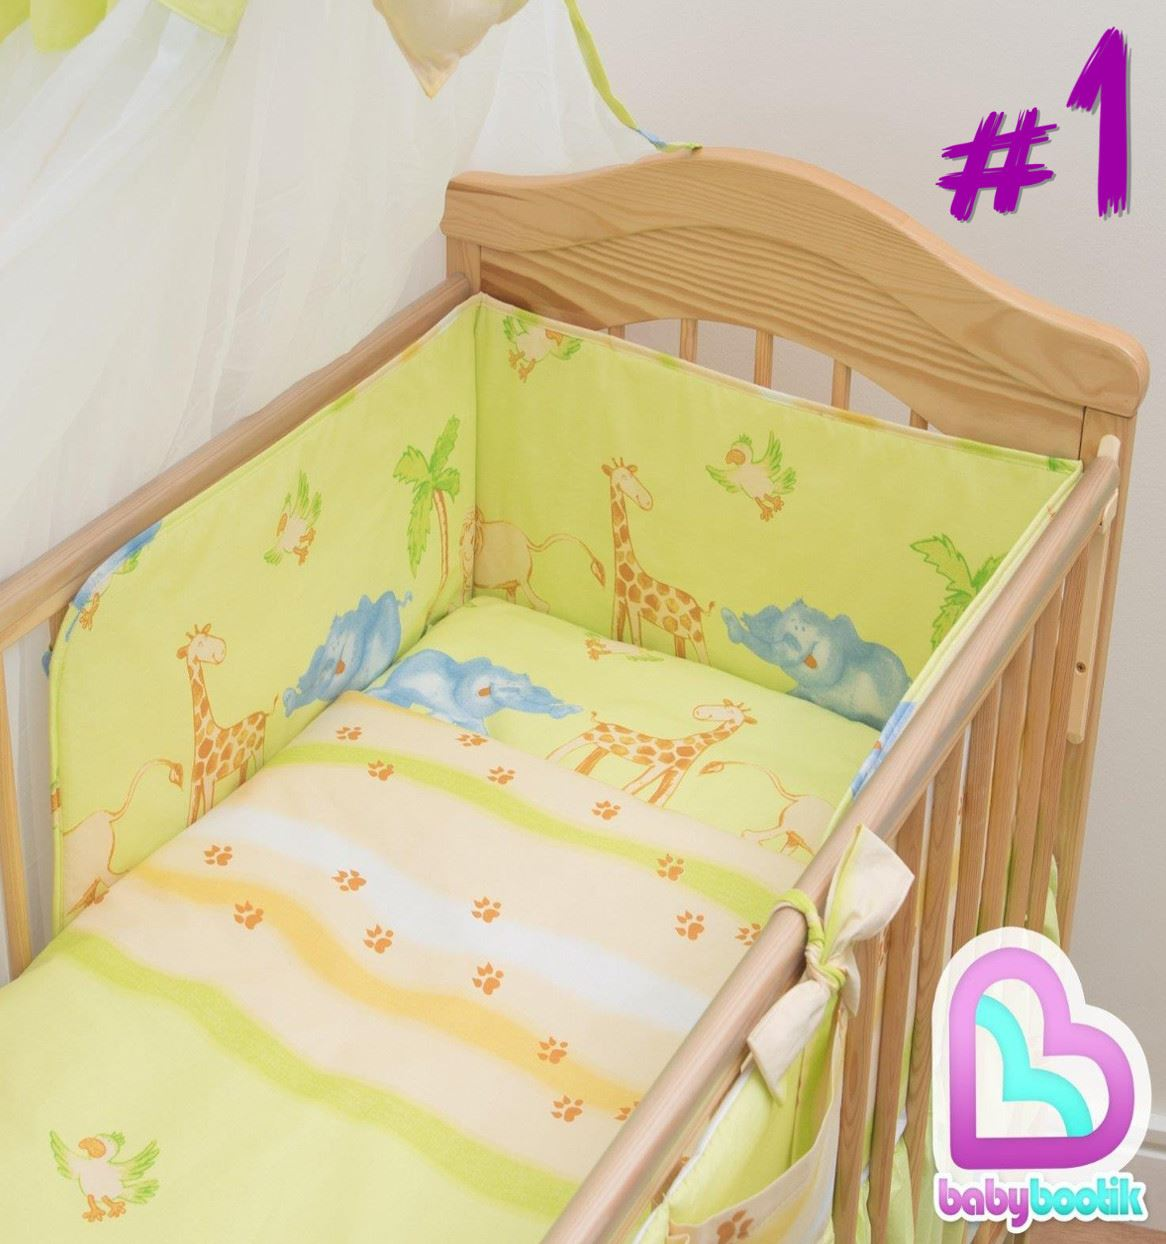 5 st ck baby kinderzimmer kinderbett bettw sche set kissen bettbezug nestchen ebay. Black Bedroom Furniture Sets. Home Design Ideas